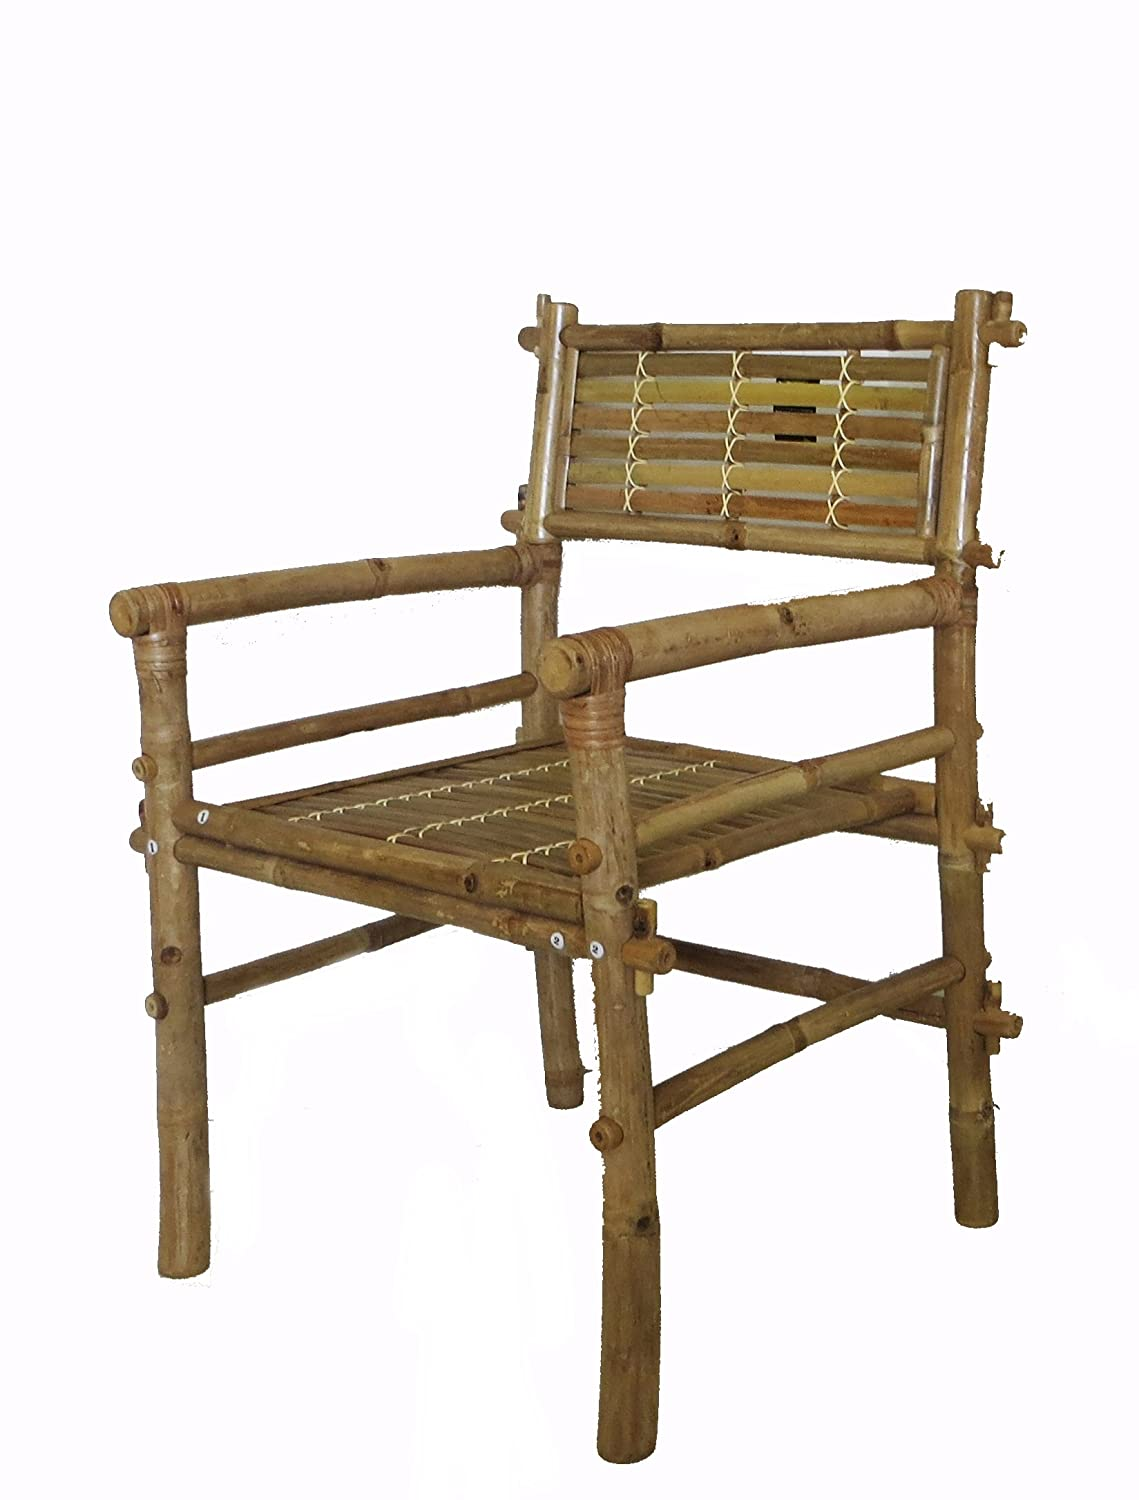 Preferred Amazon.com : Bamboo Arm Chair : Armchairs : Garden & Outdoor PW03